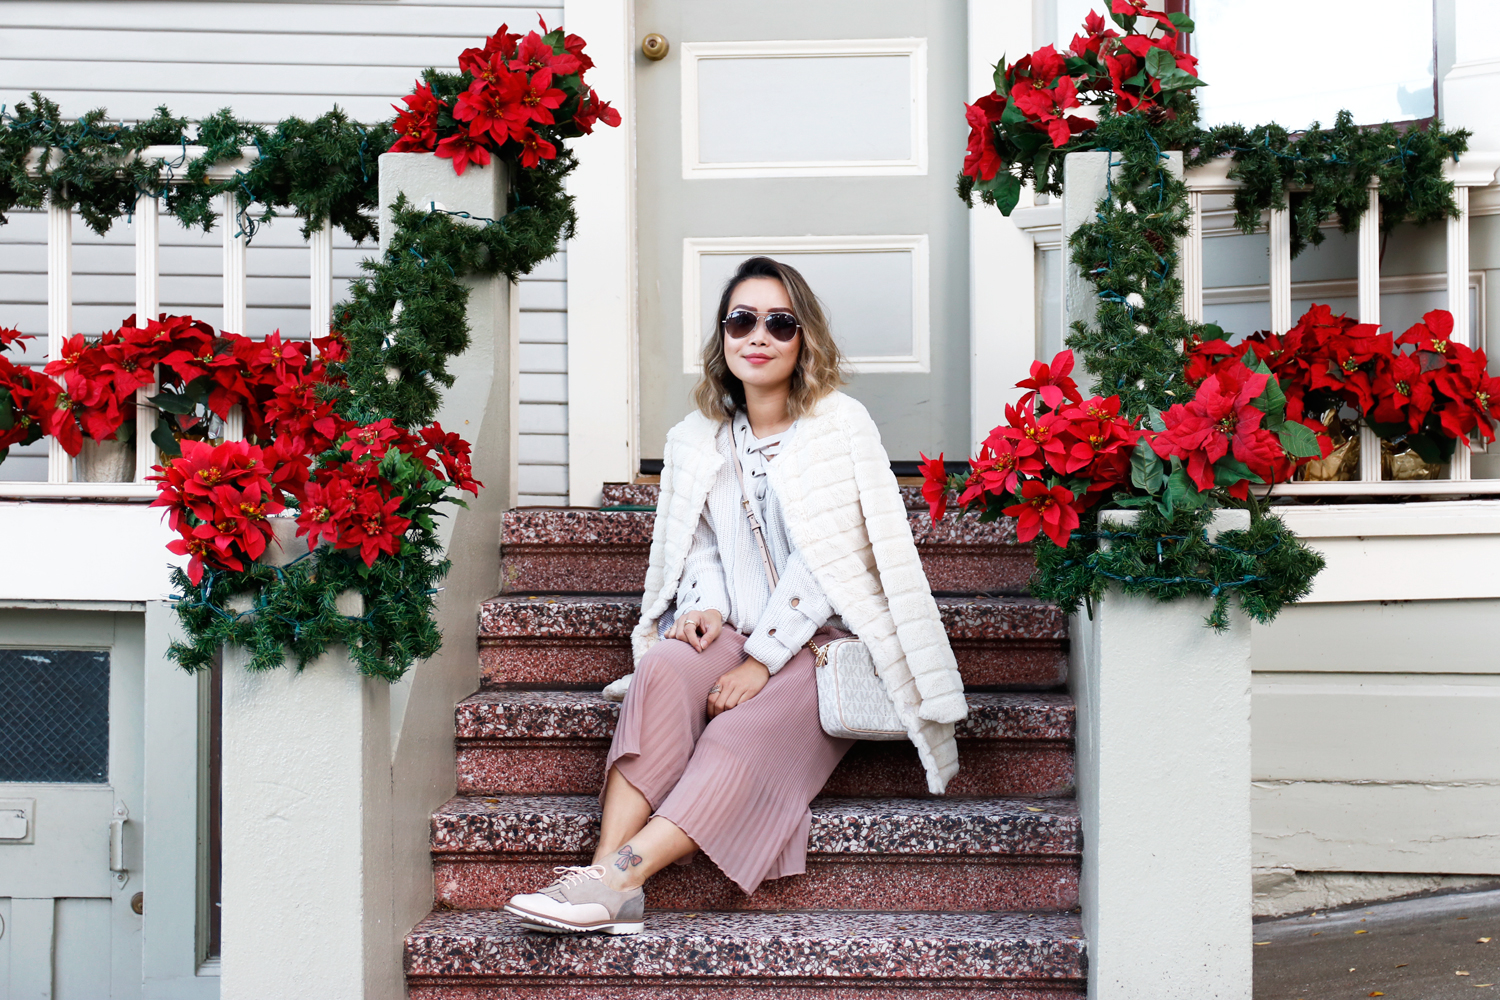 01holiday-christmas-neutral-pastel-sf-sanfrancisco-fashion-style